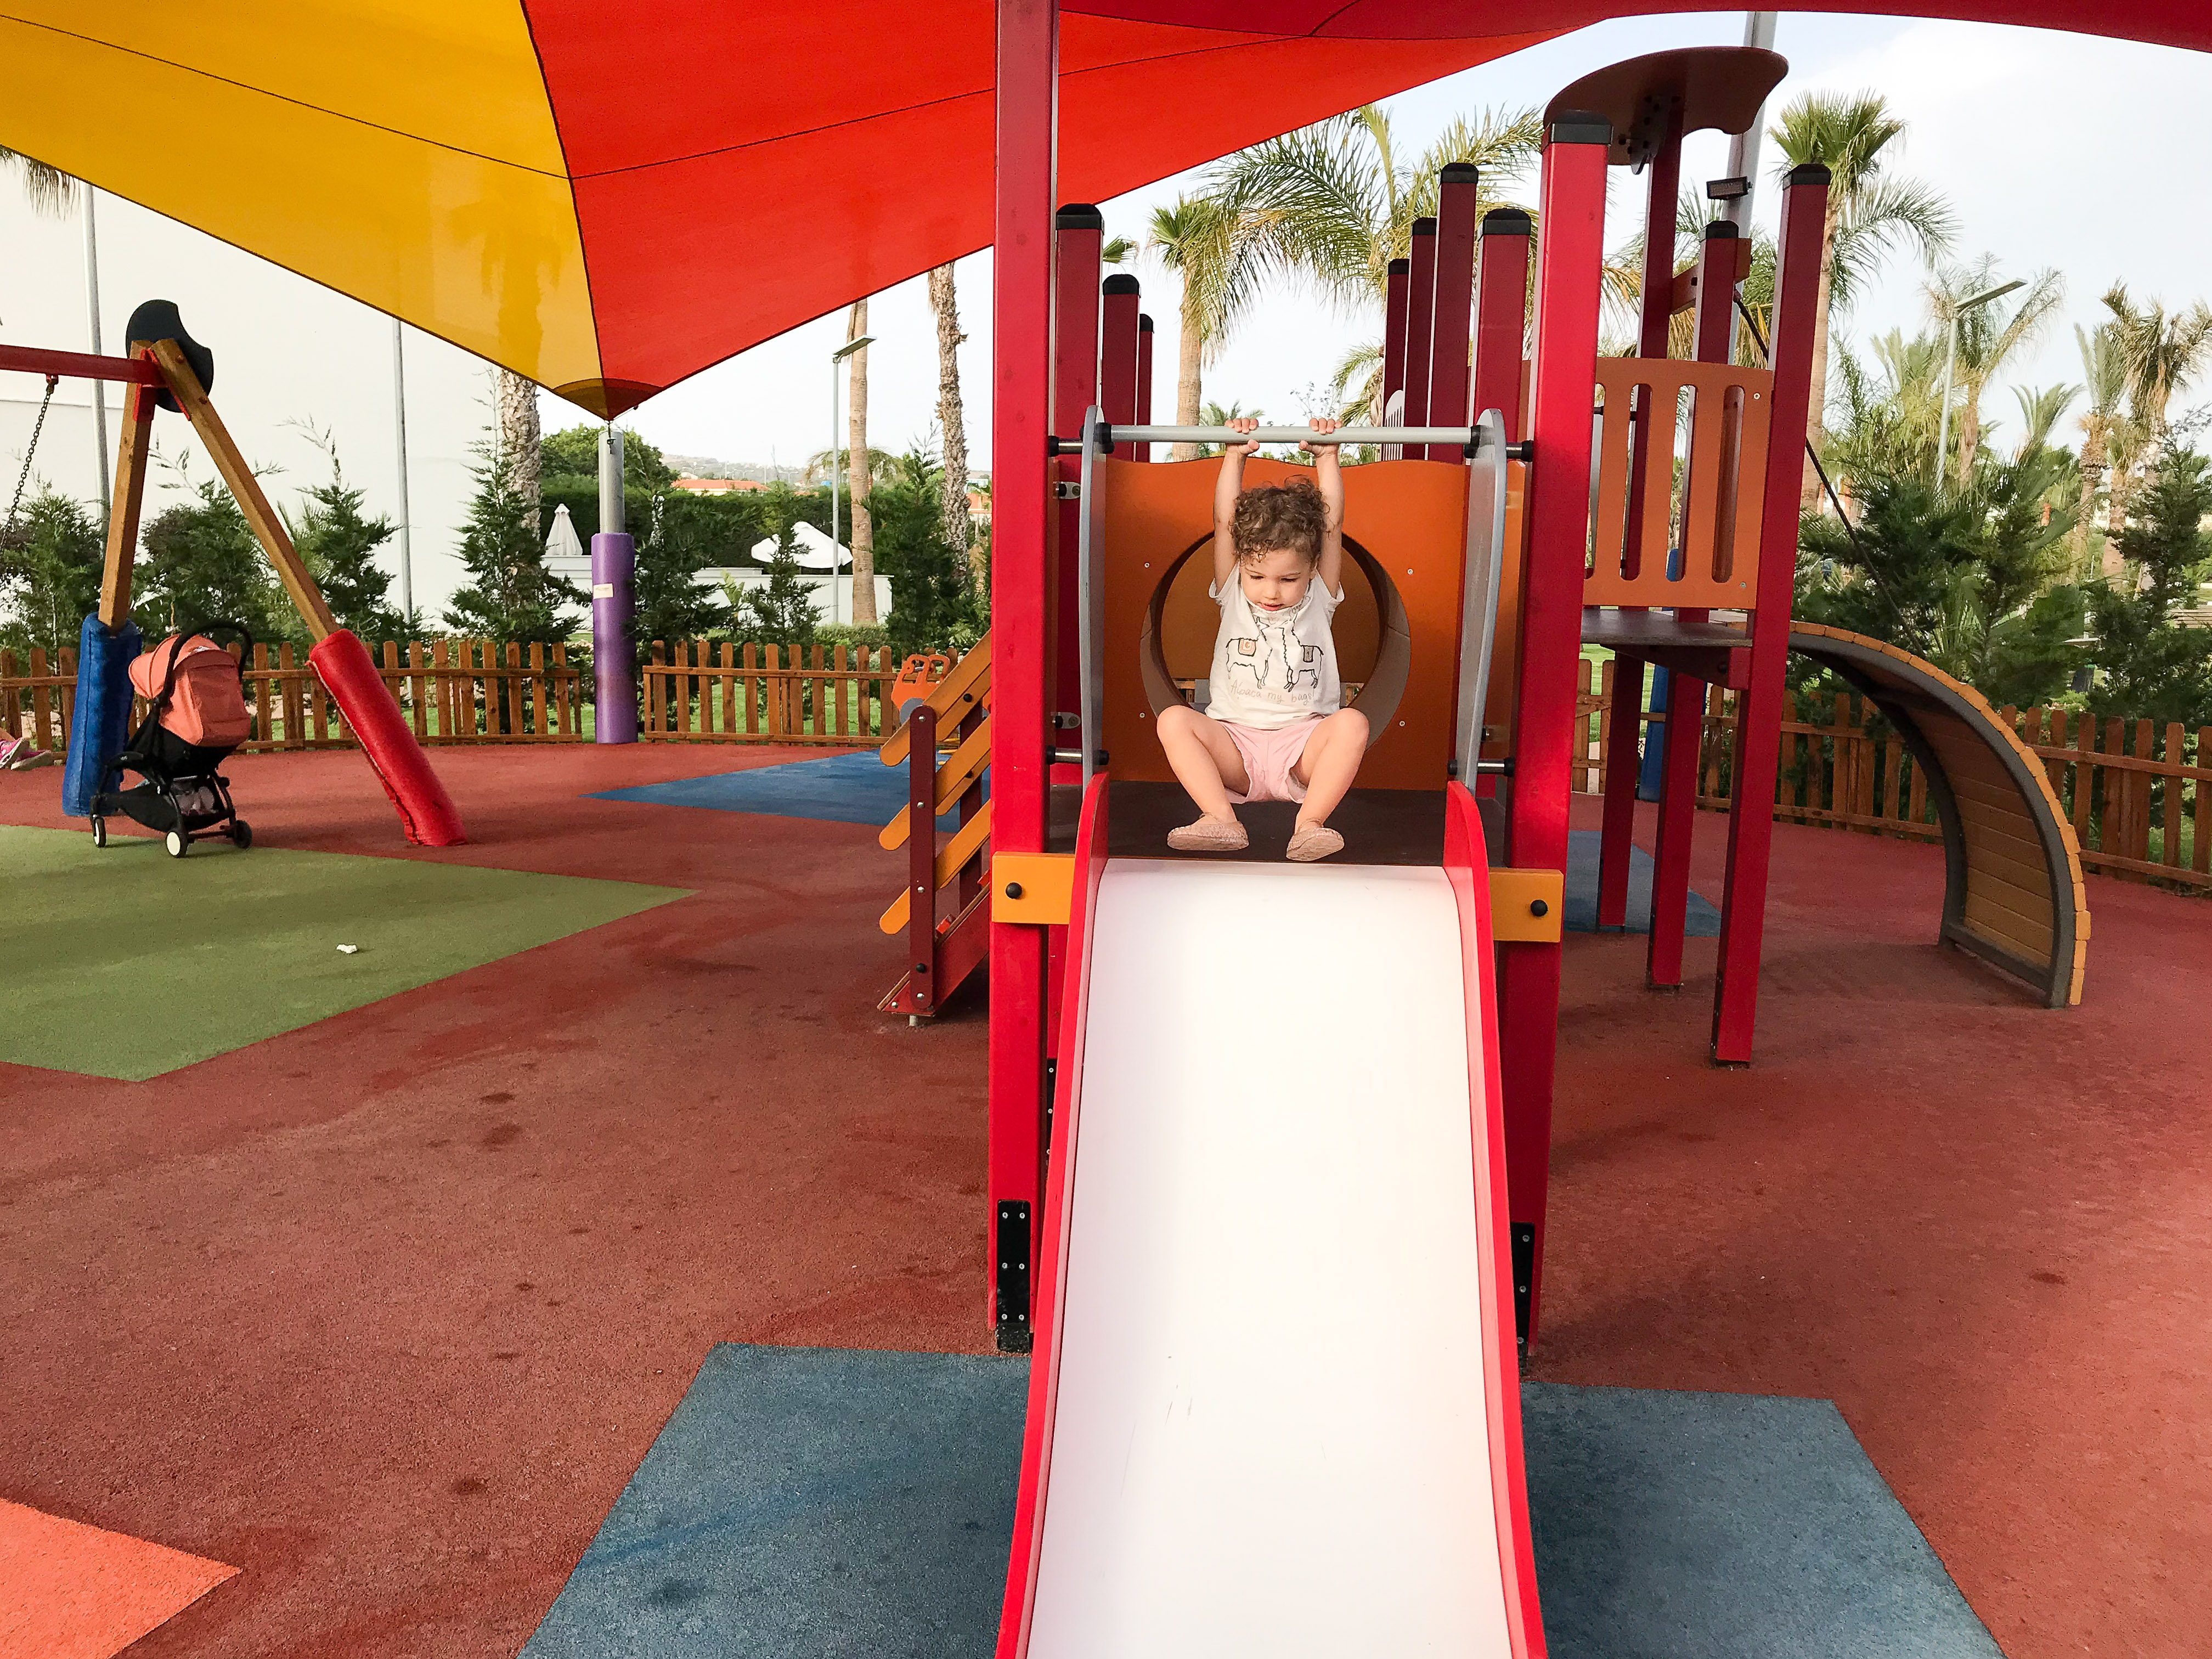 family friendly hotels cyprus - Olympic Lagoon Resort Ayia Napa Playground